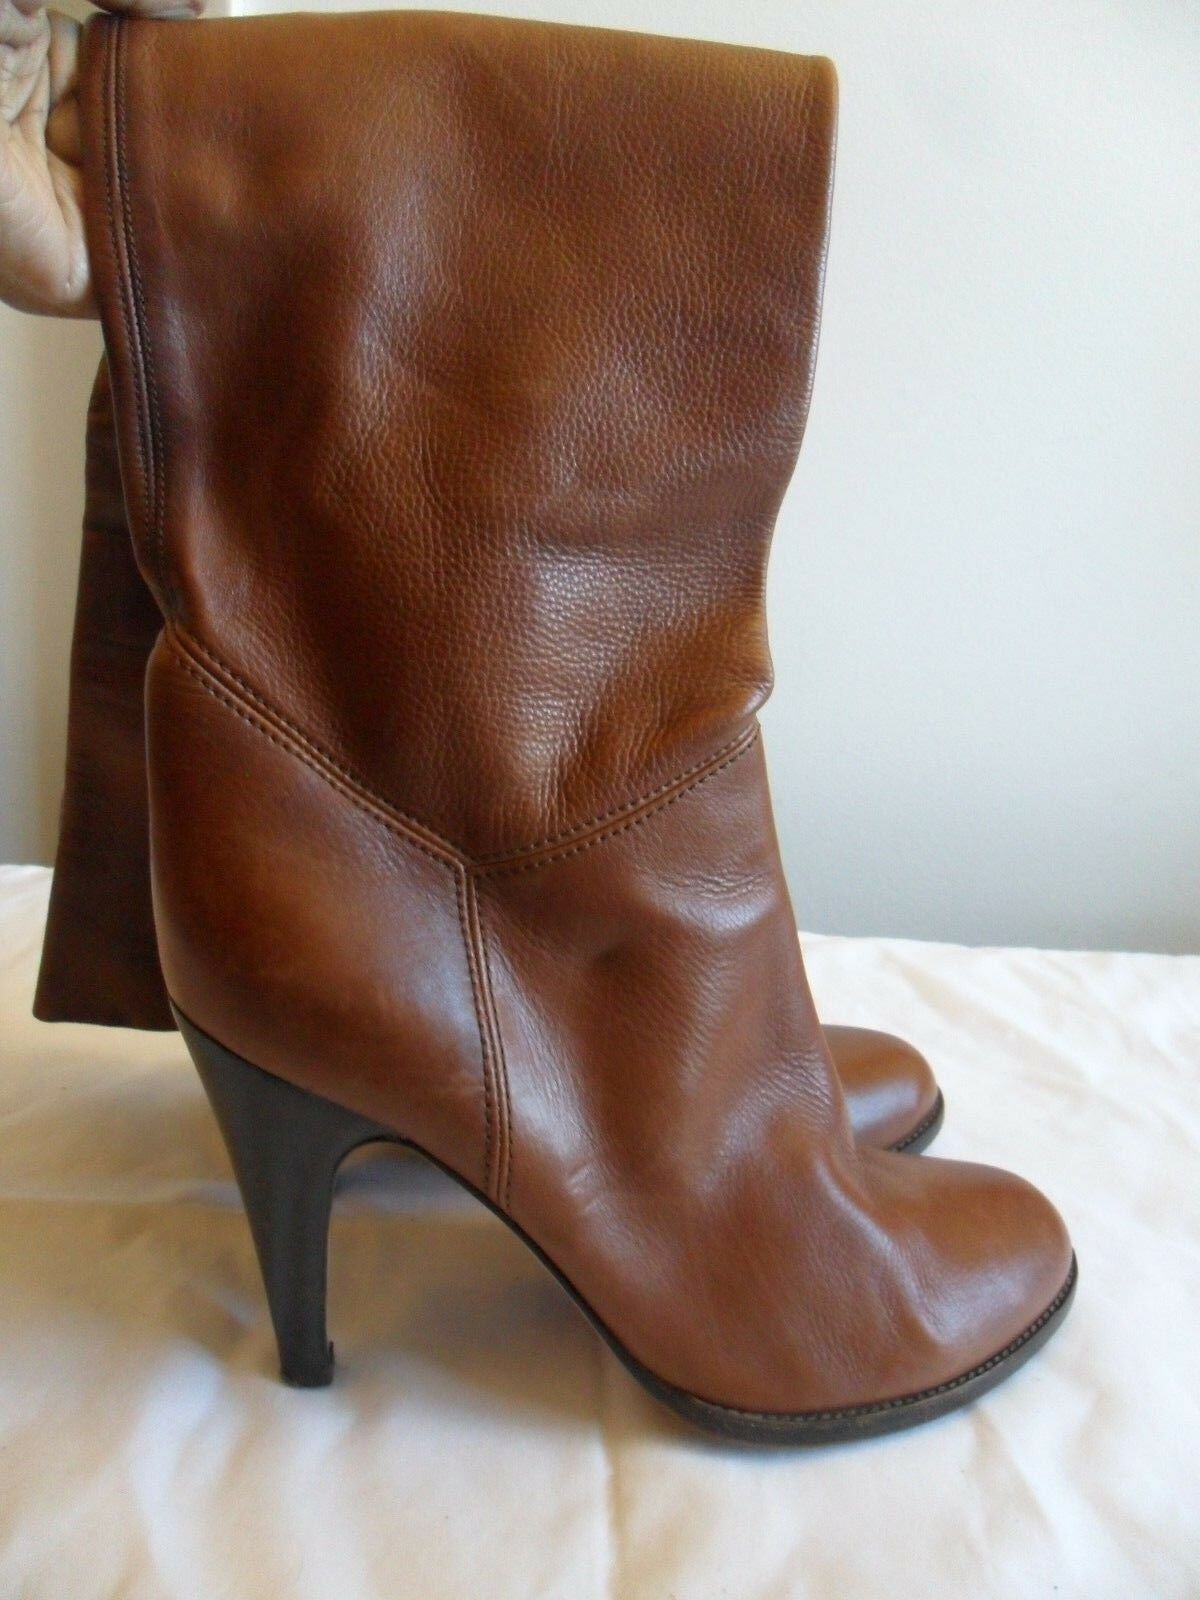 Vero Cuoio marron Leather Knee bottes, Taille 40 US 10